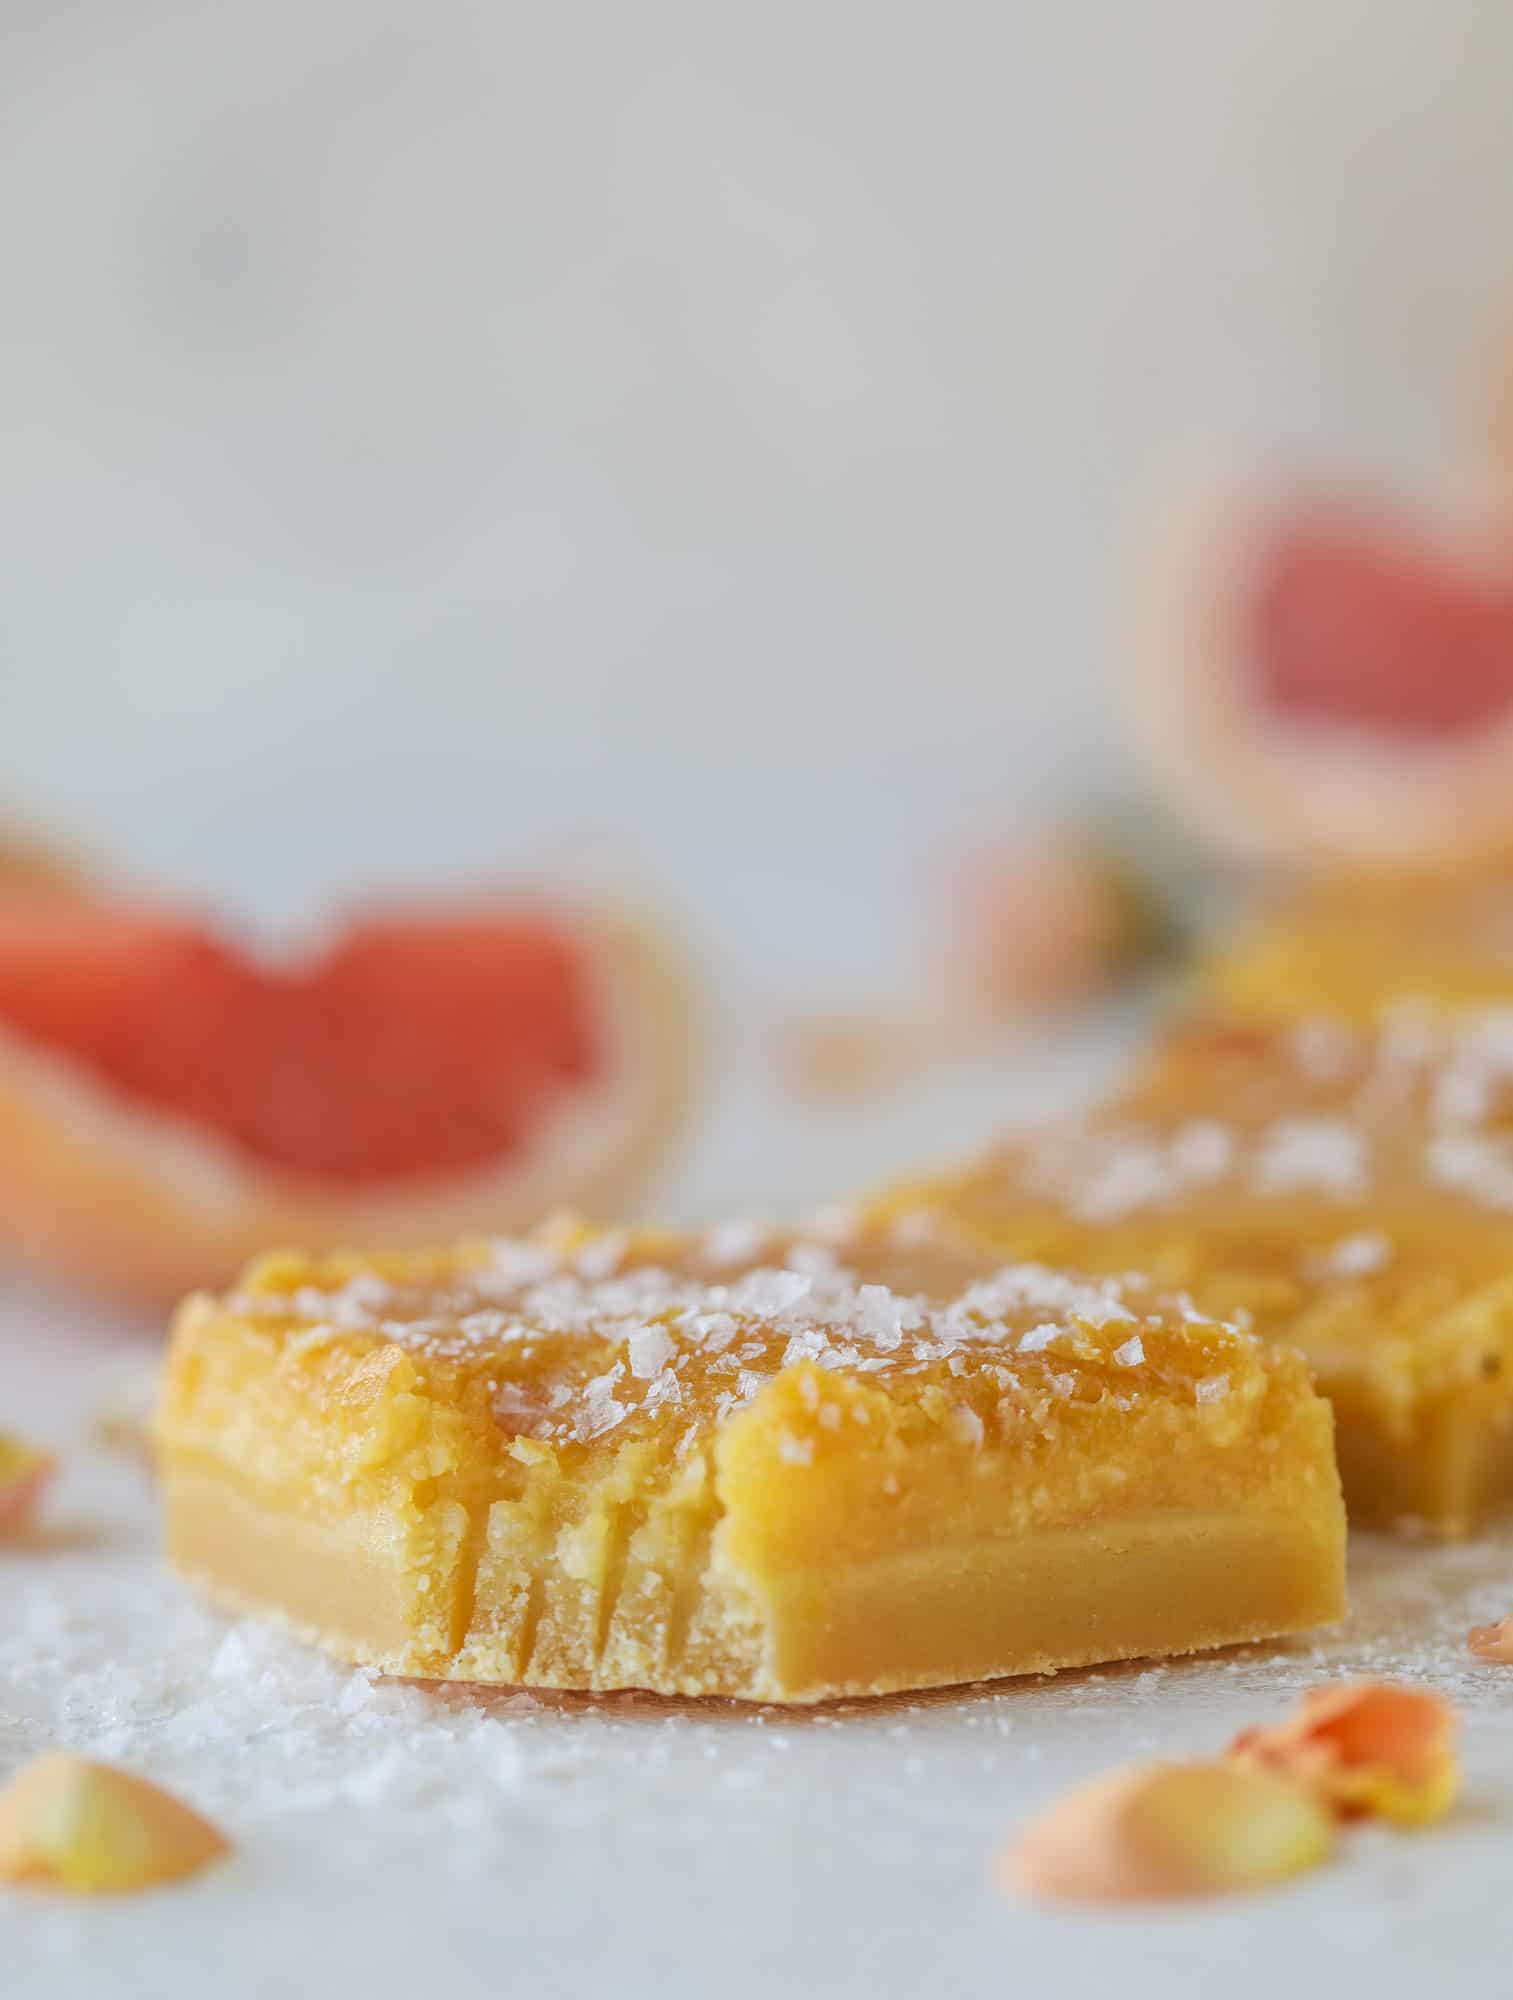 These salted citrus bars are made of both grapefruit and lemon curd on a buttery shortbread crust. Top with flaked sea salt for the perfect bite!